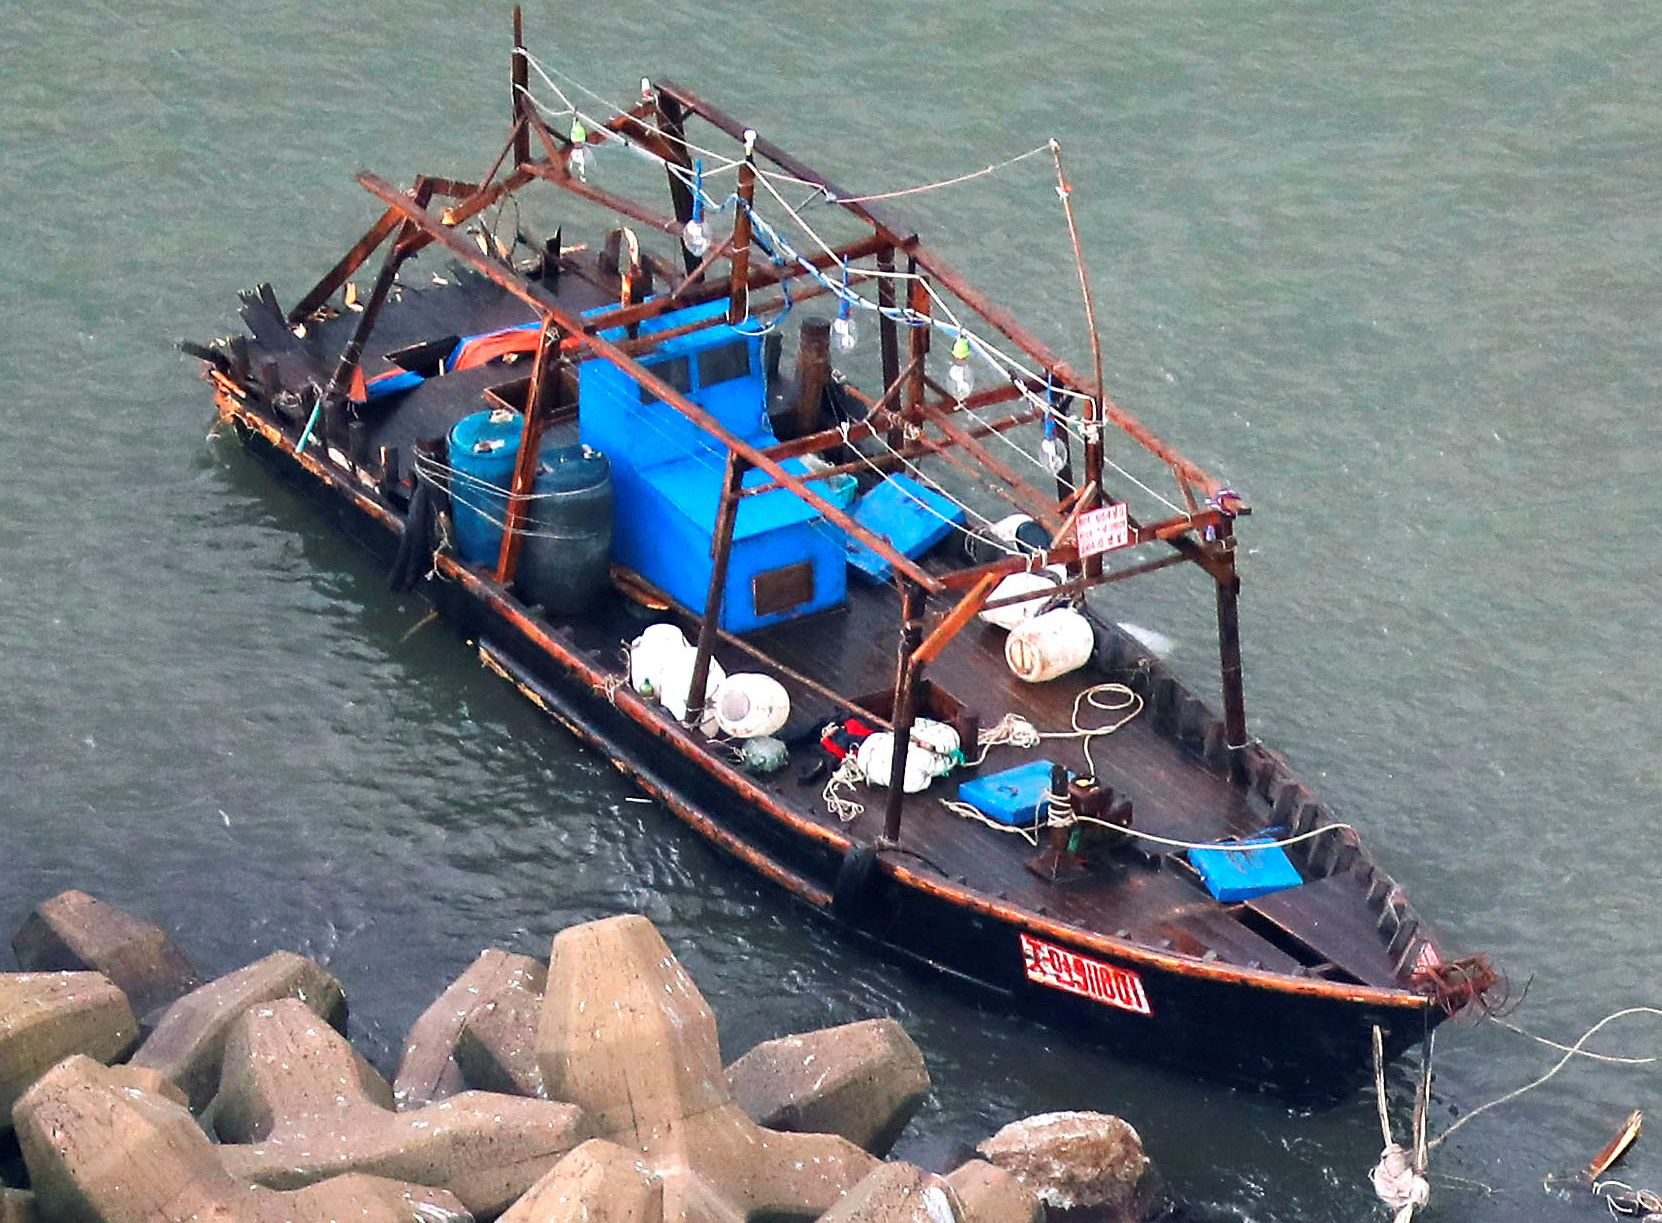 11_28_North_Korea_Boat